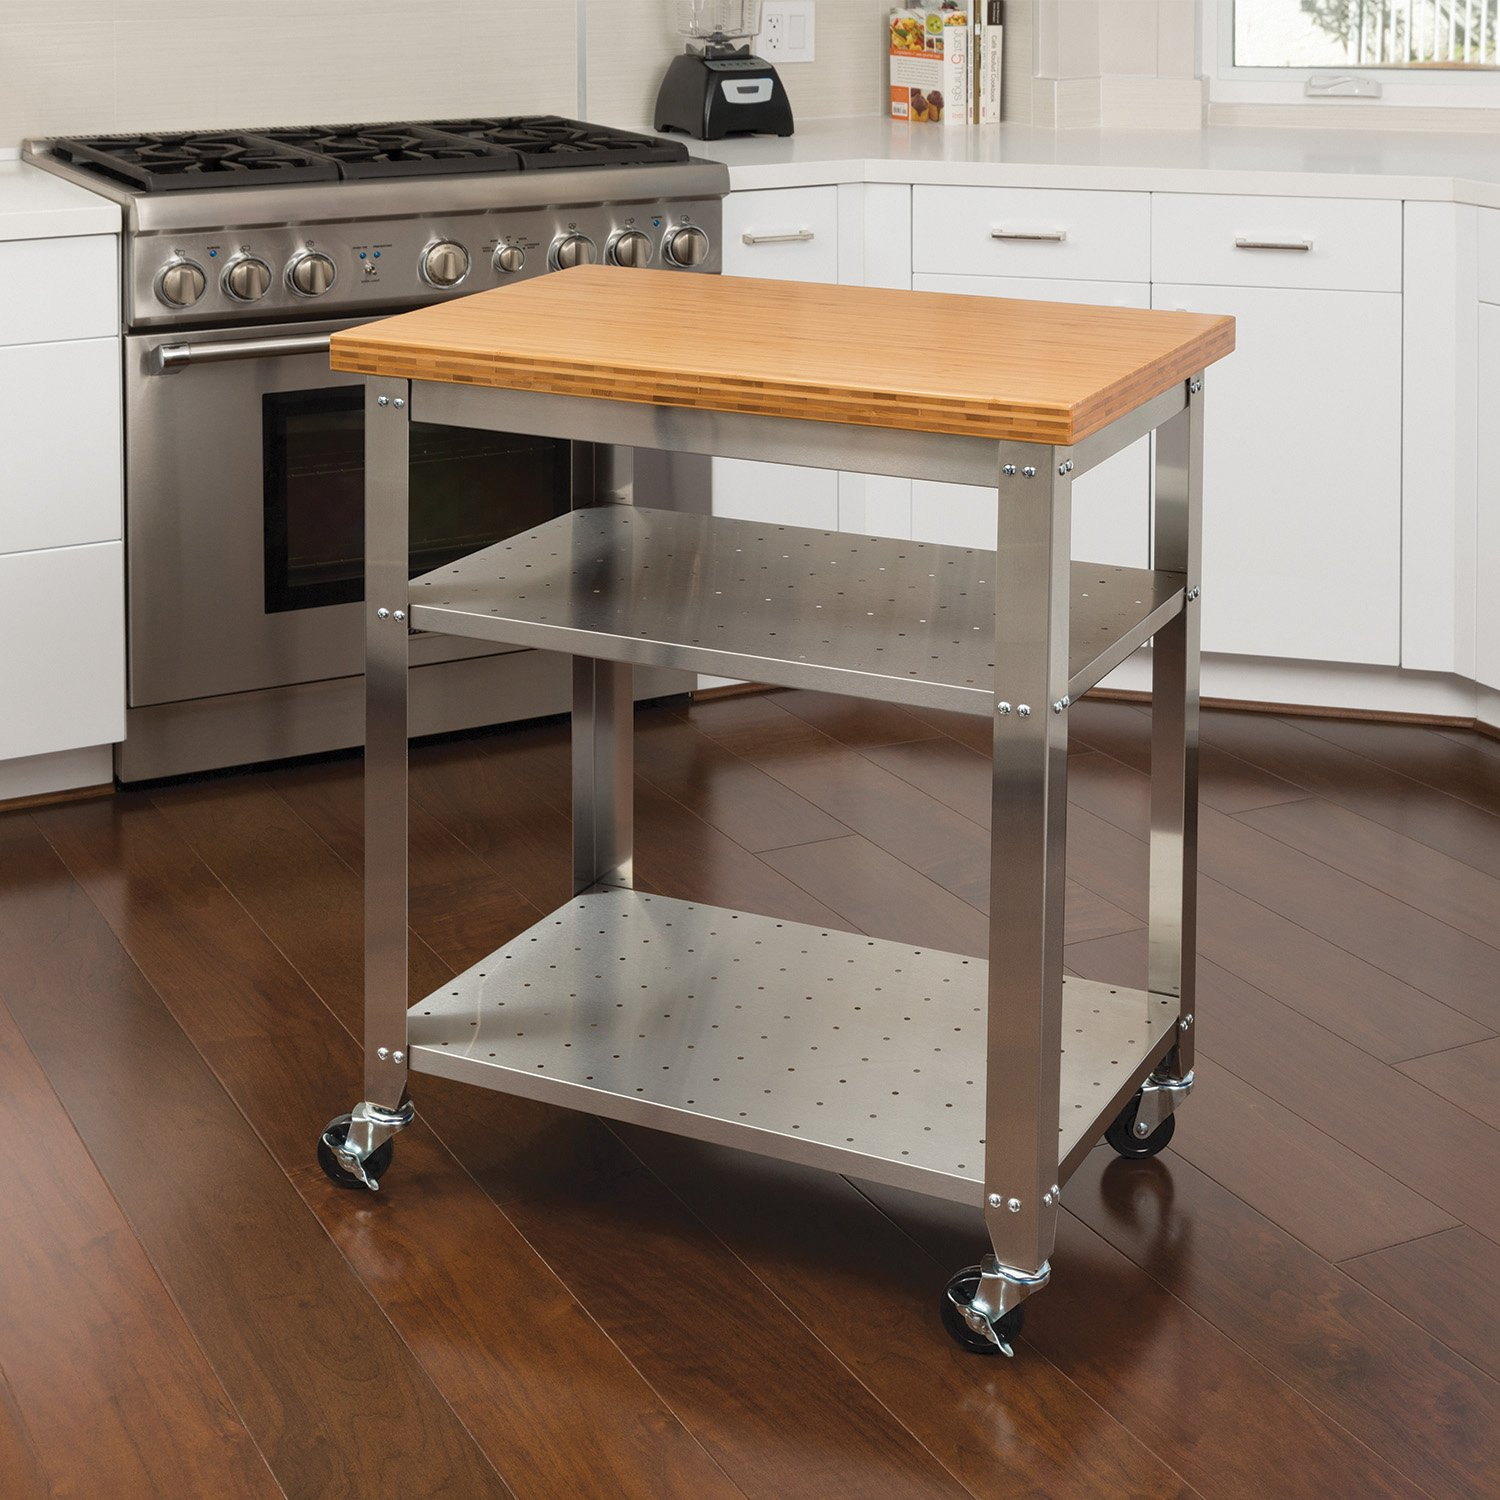 carts island tall and outdoor serving folding the image rolling of best kitchen stainless collections white on table awesome steel bench wheels islands movable cart